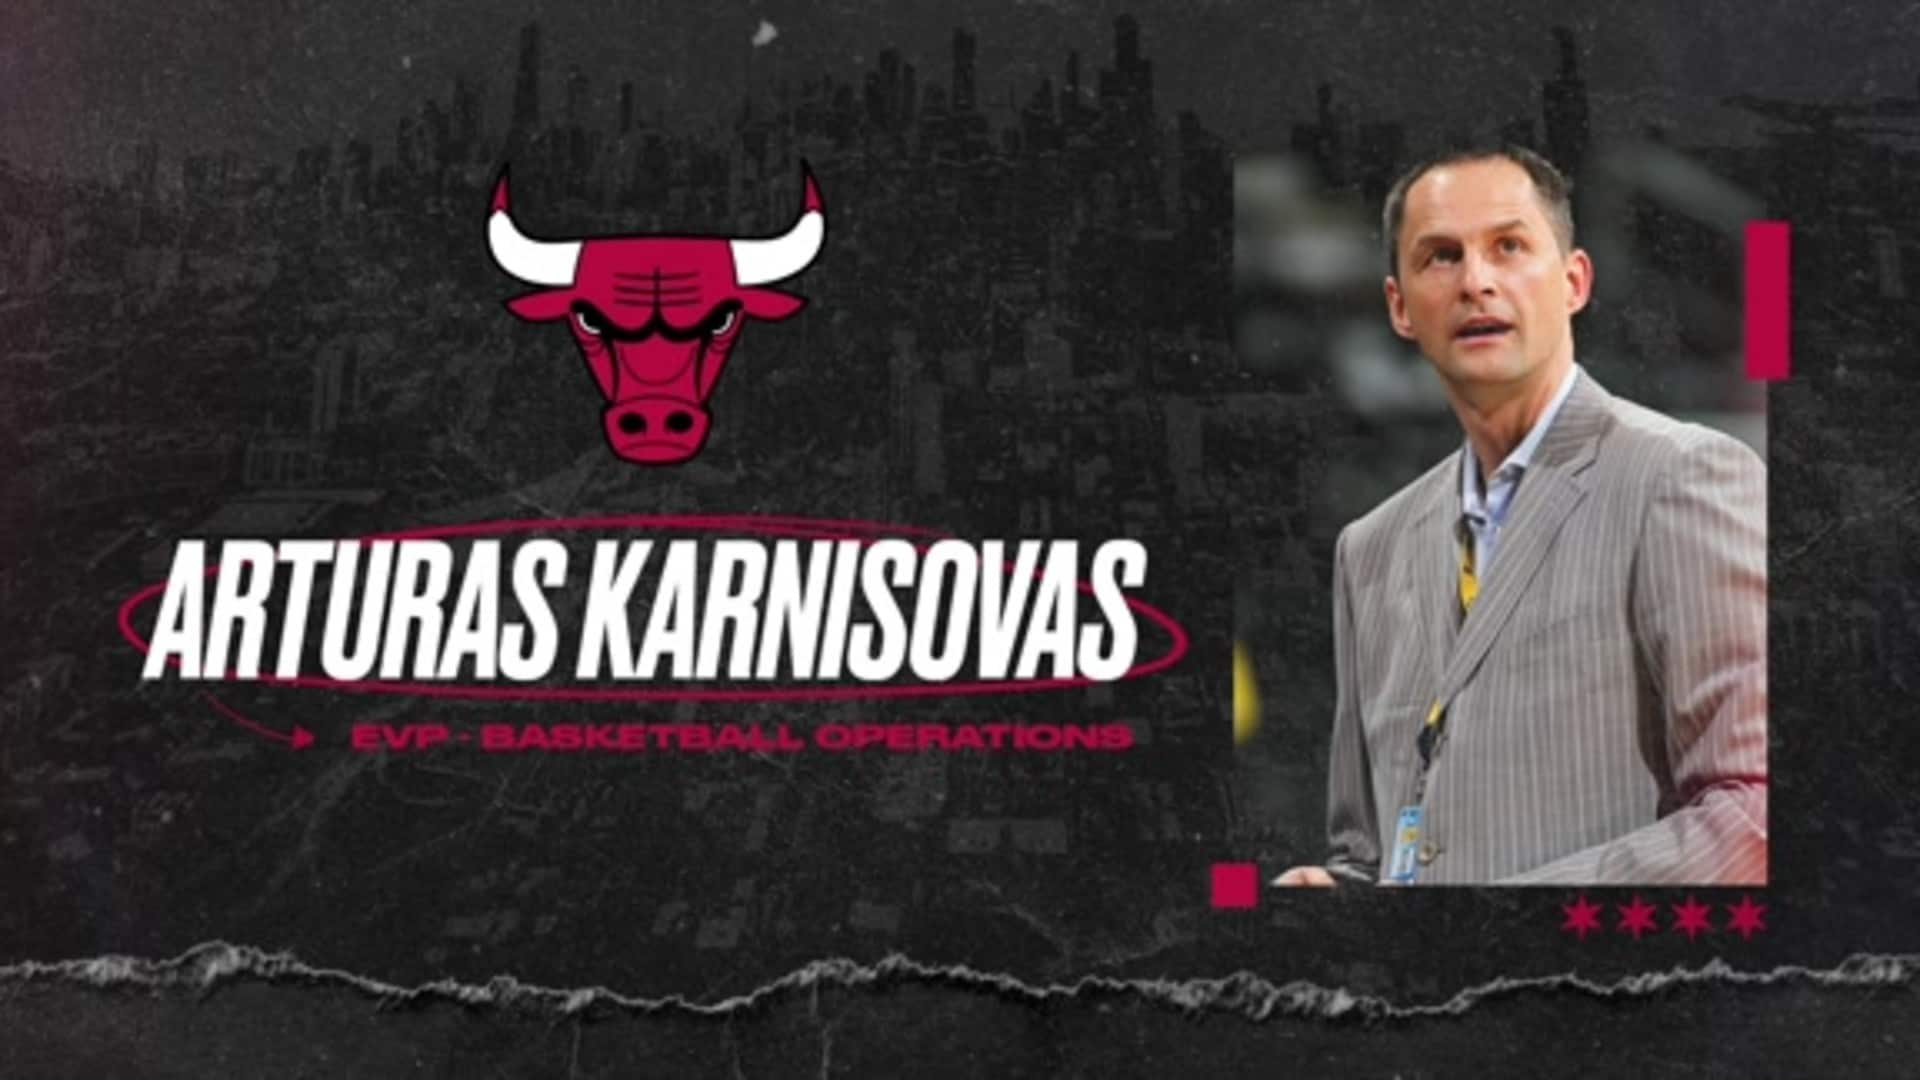 Arturas Karnisovas - Bulls Introductory Conference Call